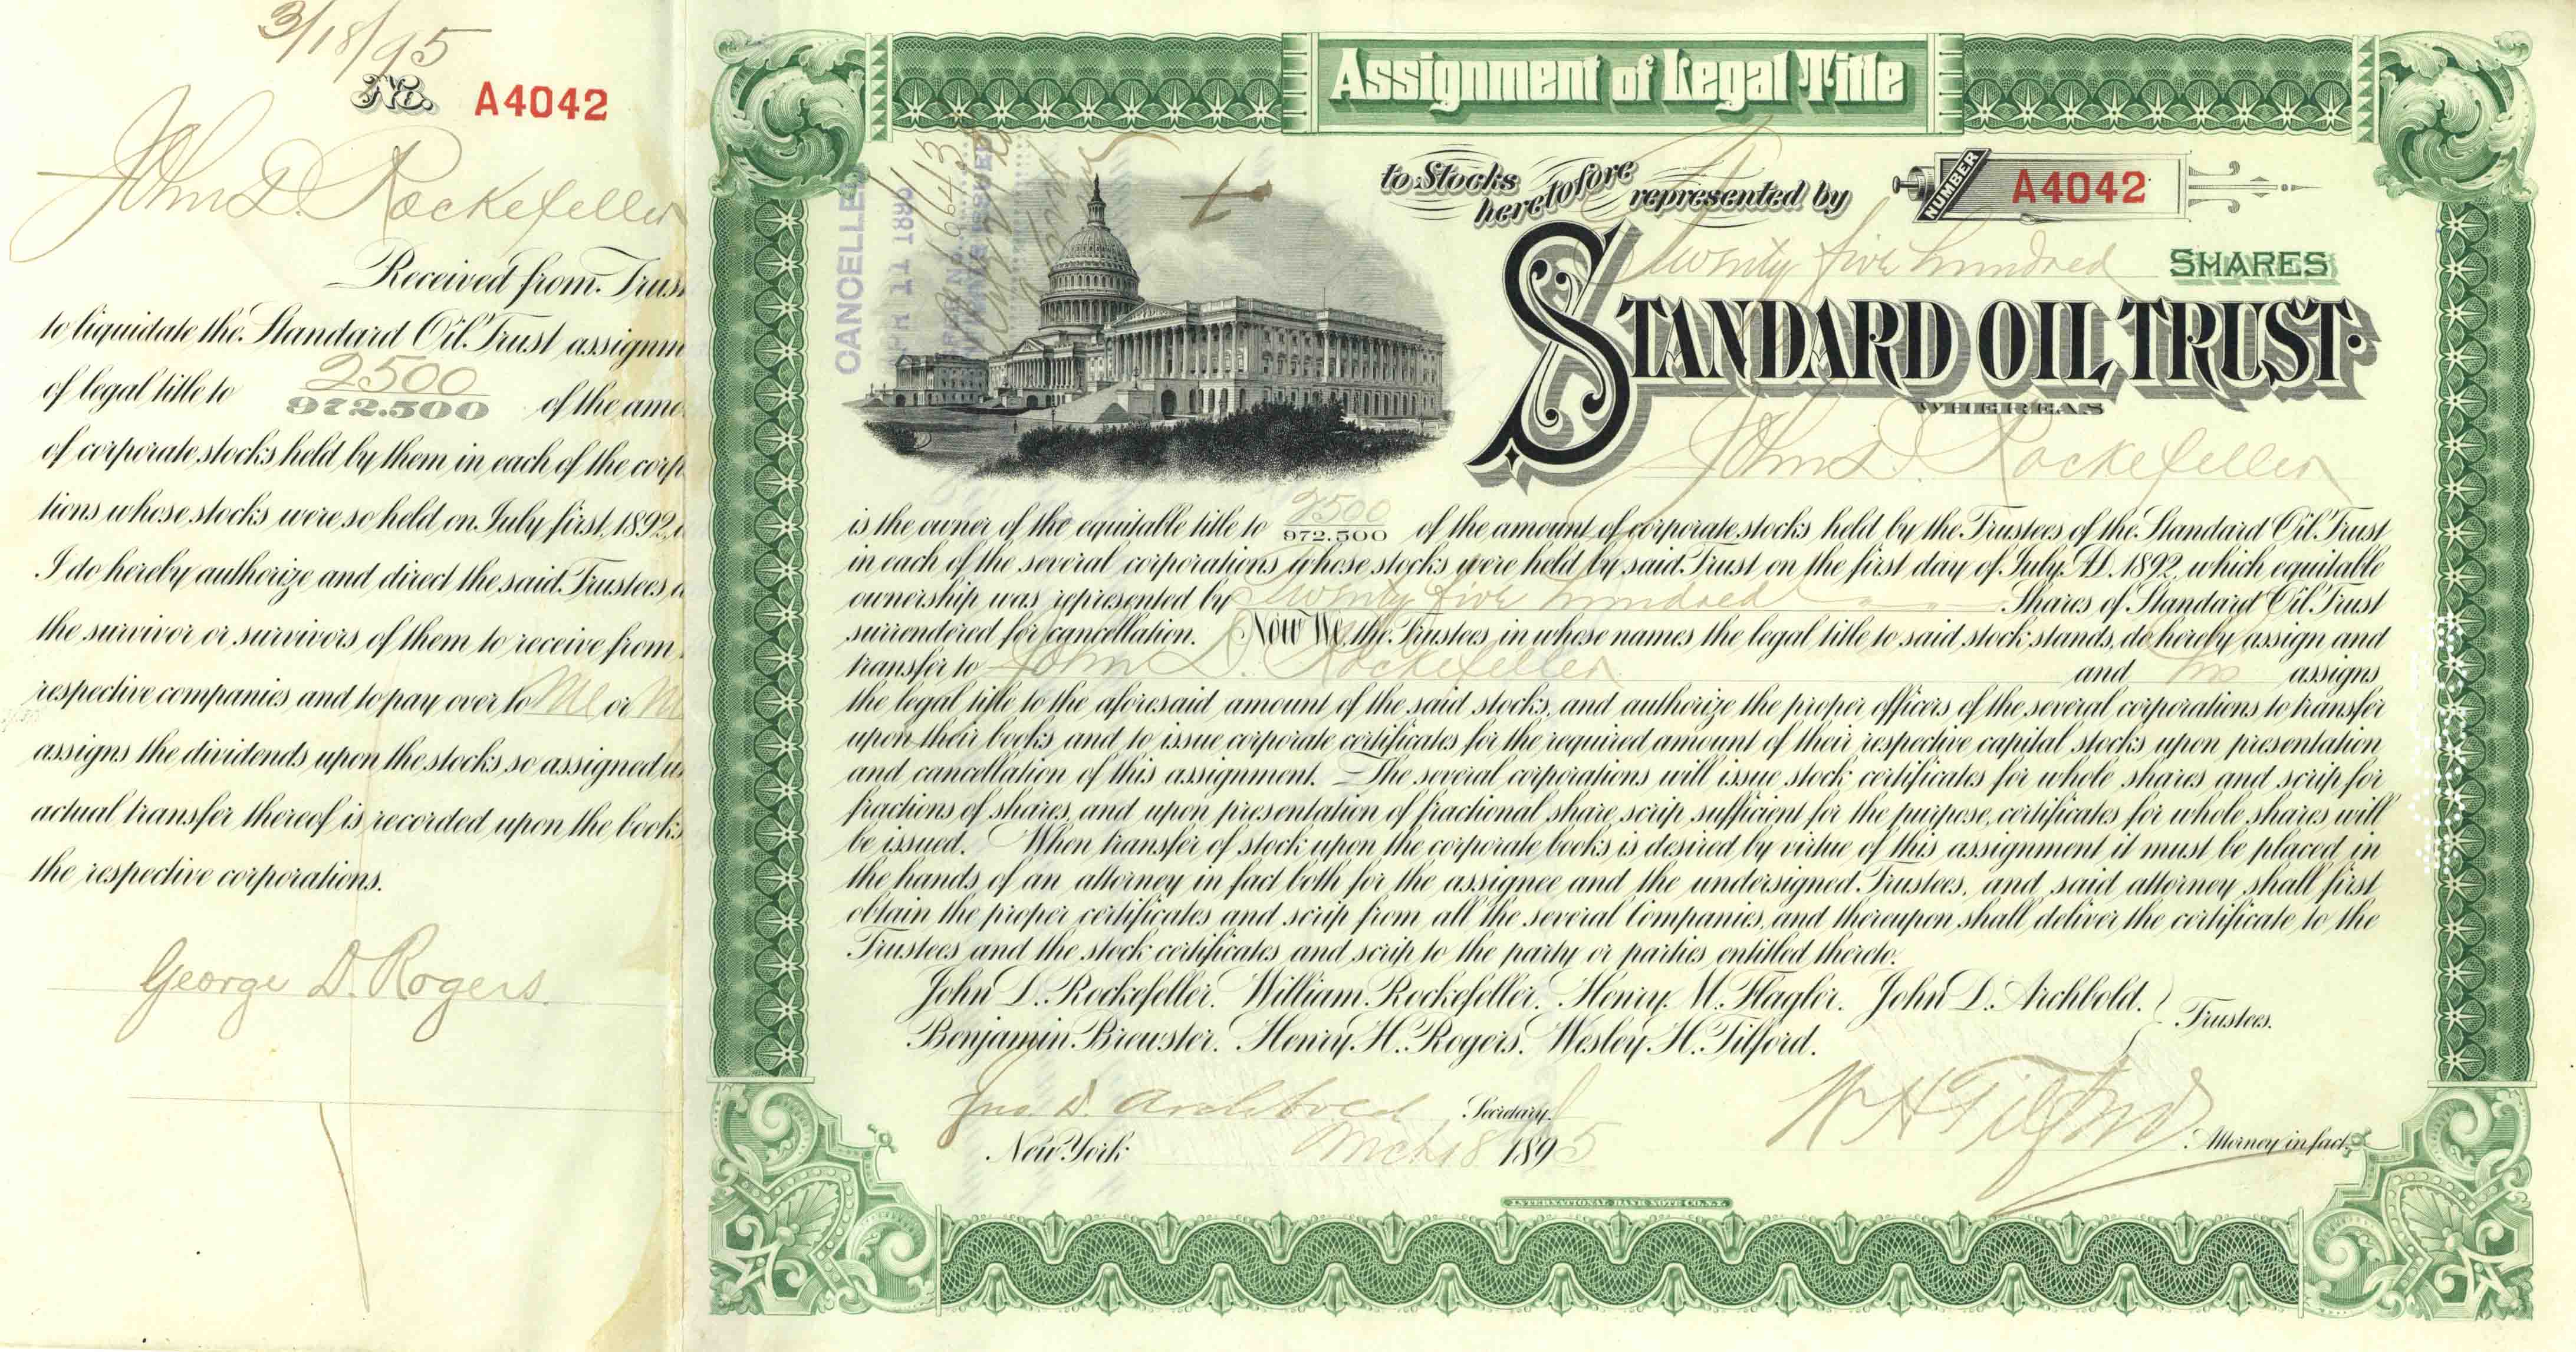 Standard Oil Trust Issued to and Signed by J.D. Rockefeller - Stock Certificate - Also signed by Archbold, Tilford and Rogers